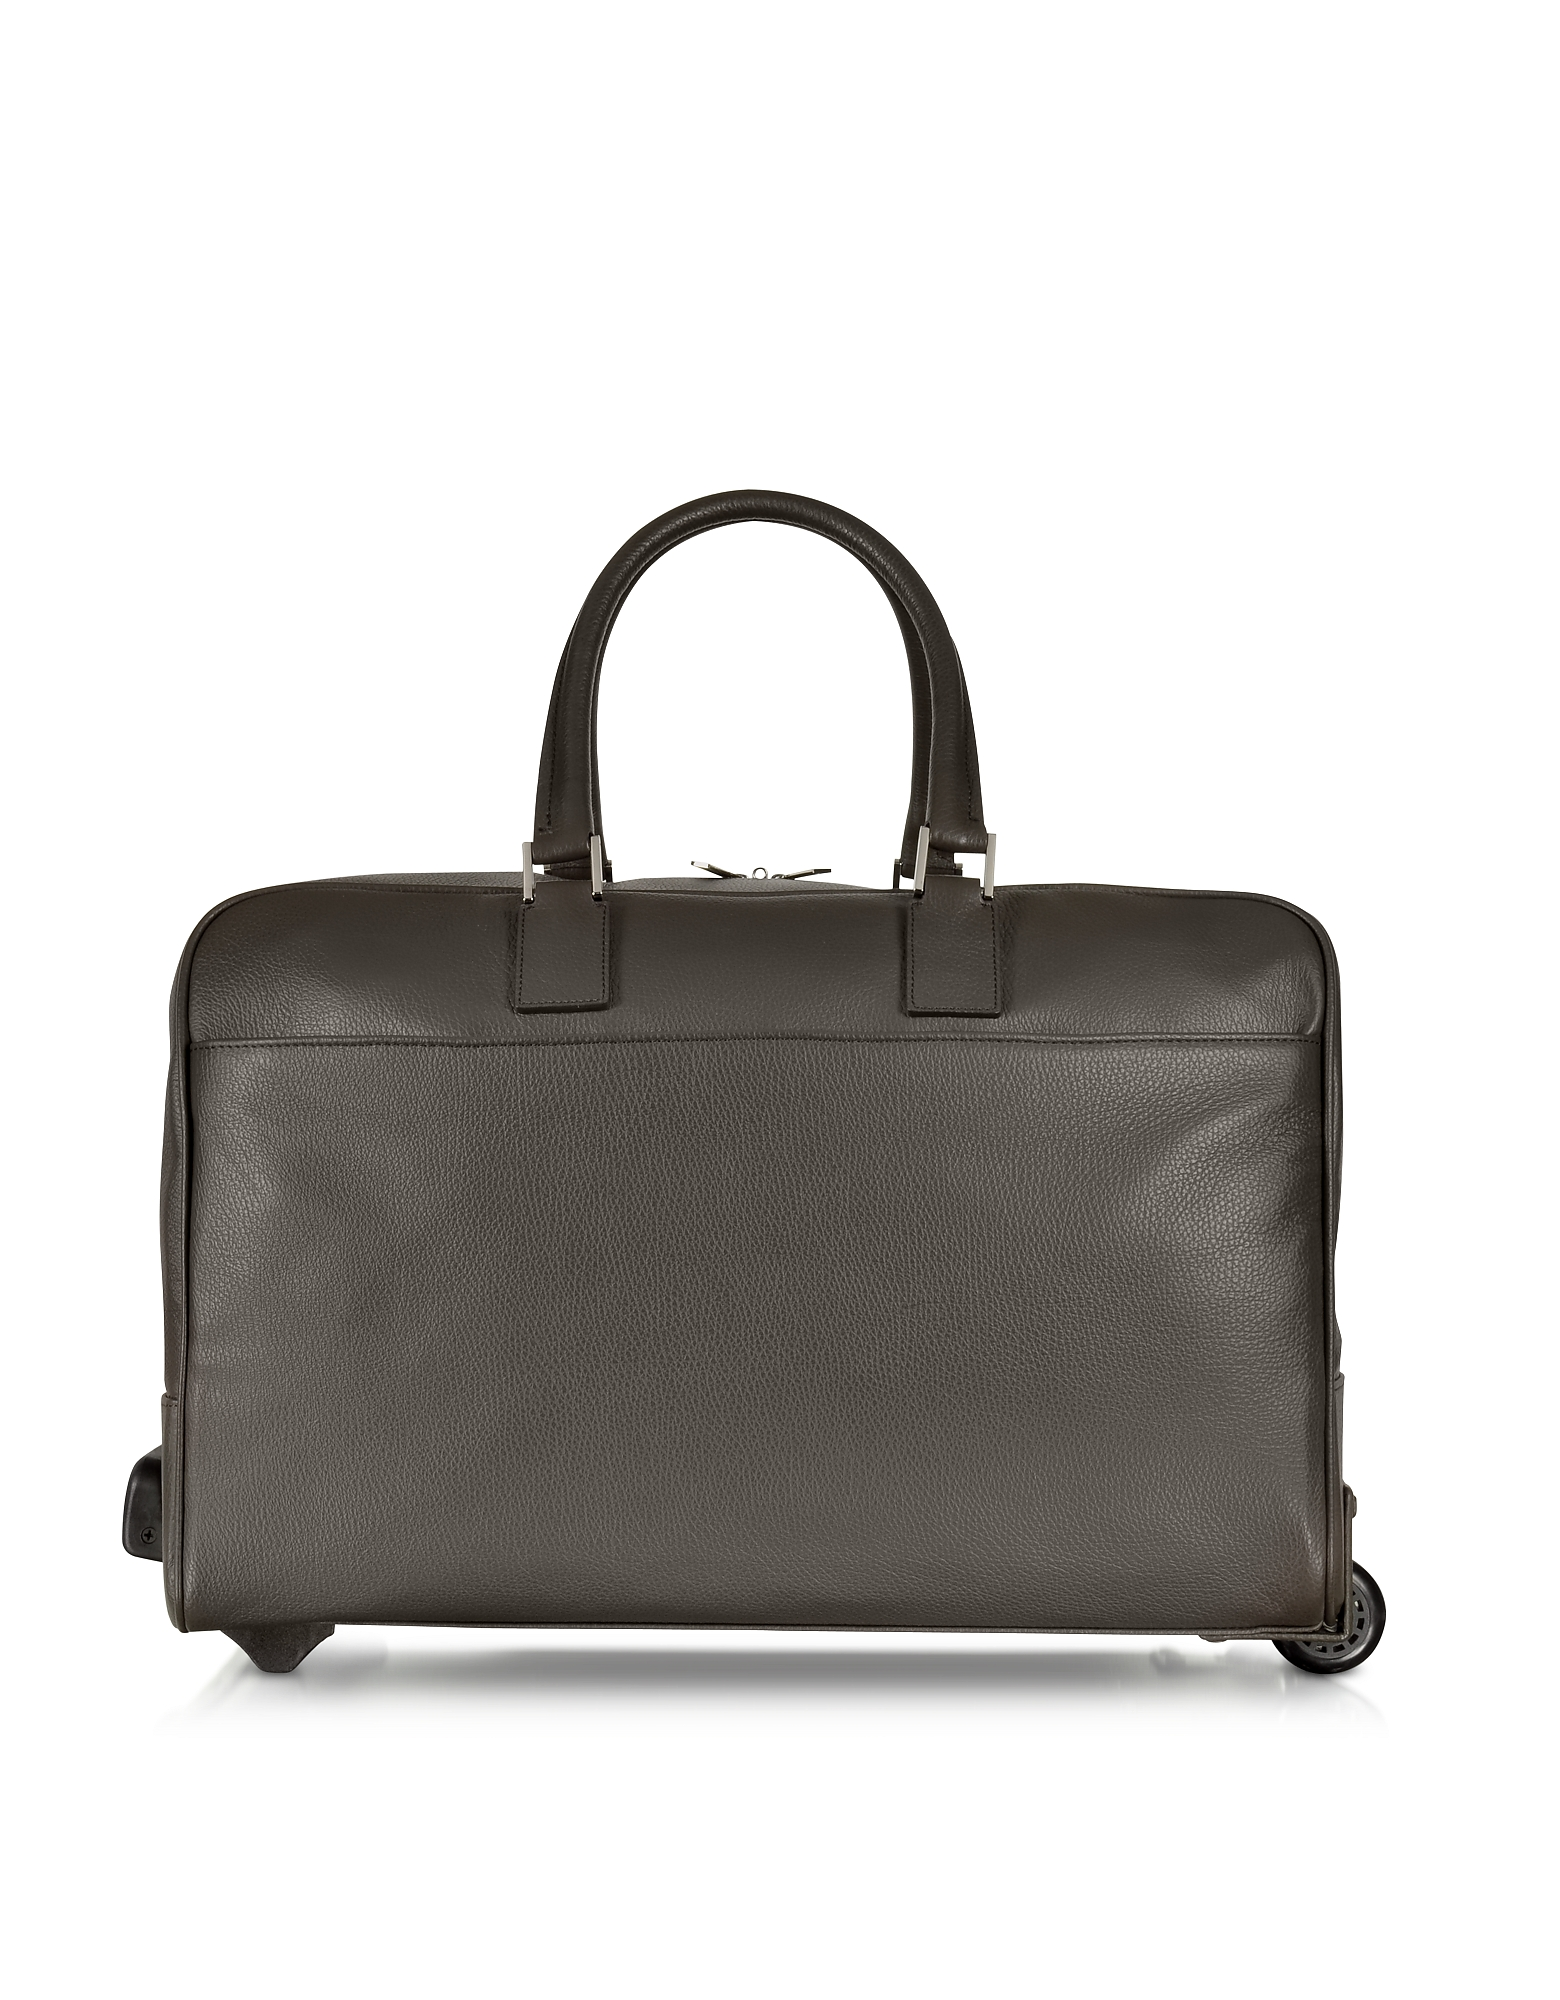 Giorgio Fedon 1919 Travel Bags, Dark Brown Travel Leather Rolling Duffle